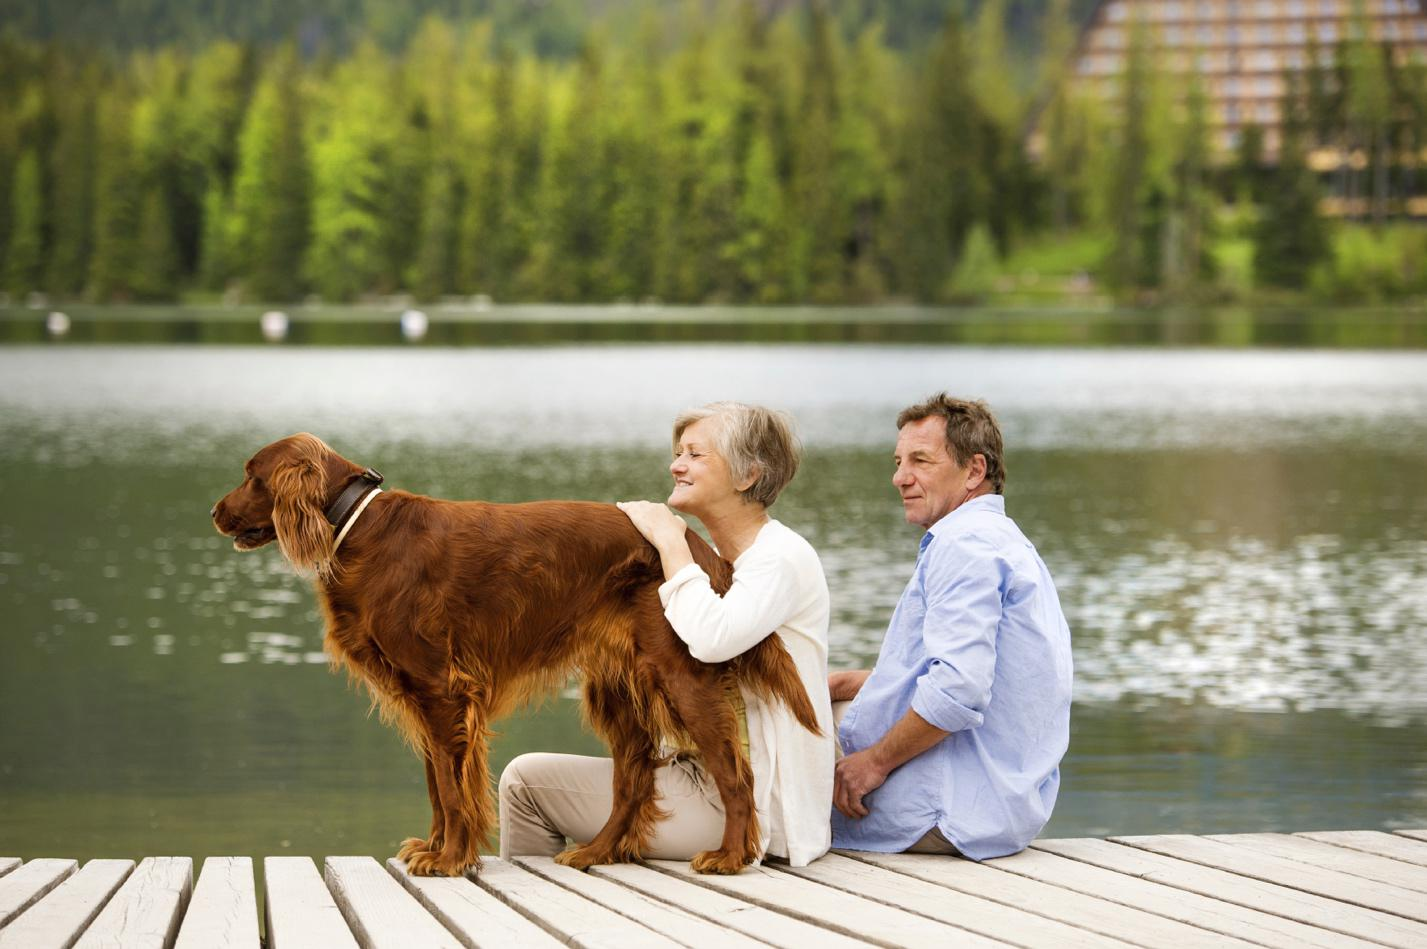 Retirement: 3 Things You Need to Consider Before It's Time on avanteinsurance.com